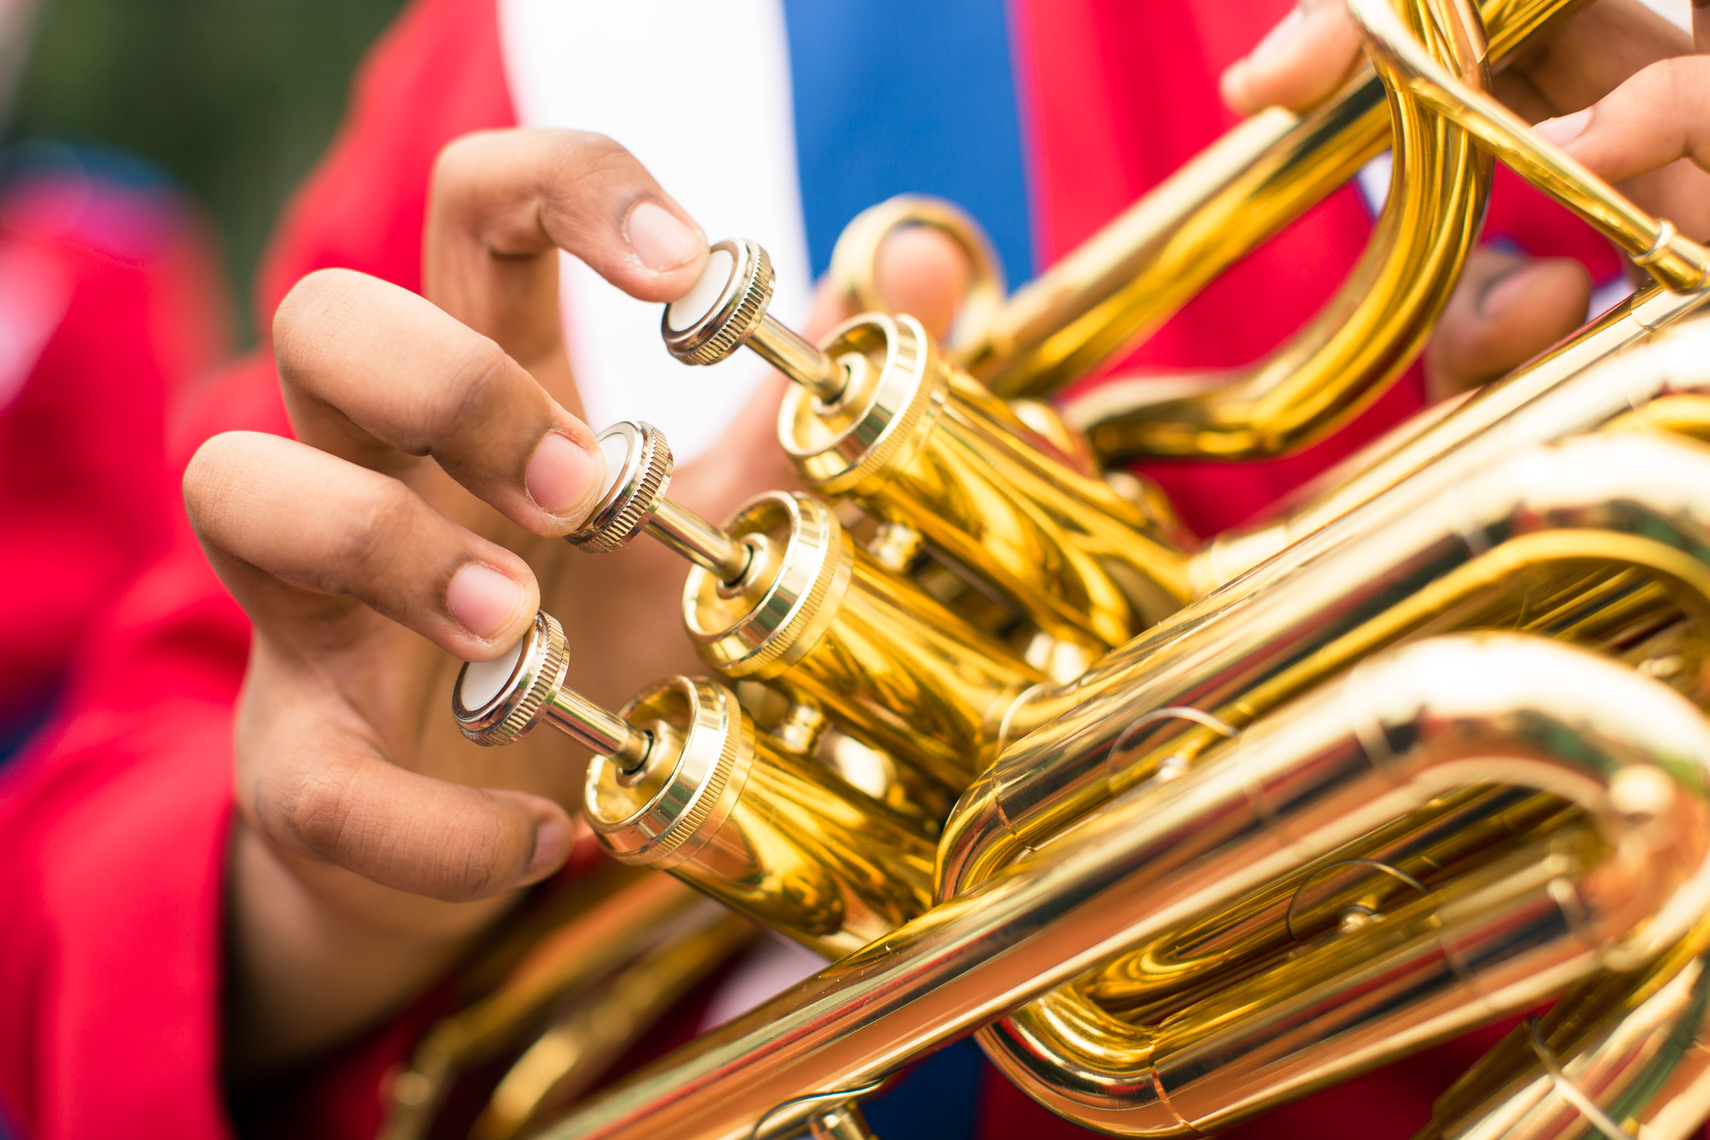 fingers touching trumpet keys for washington dc commercial photography